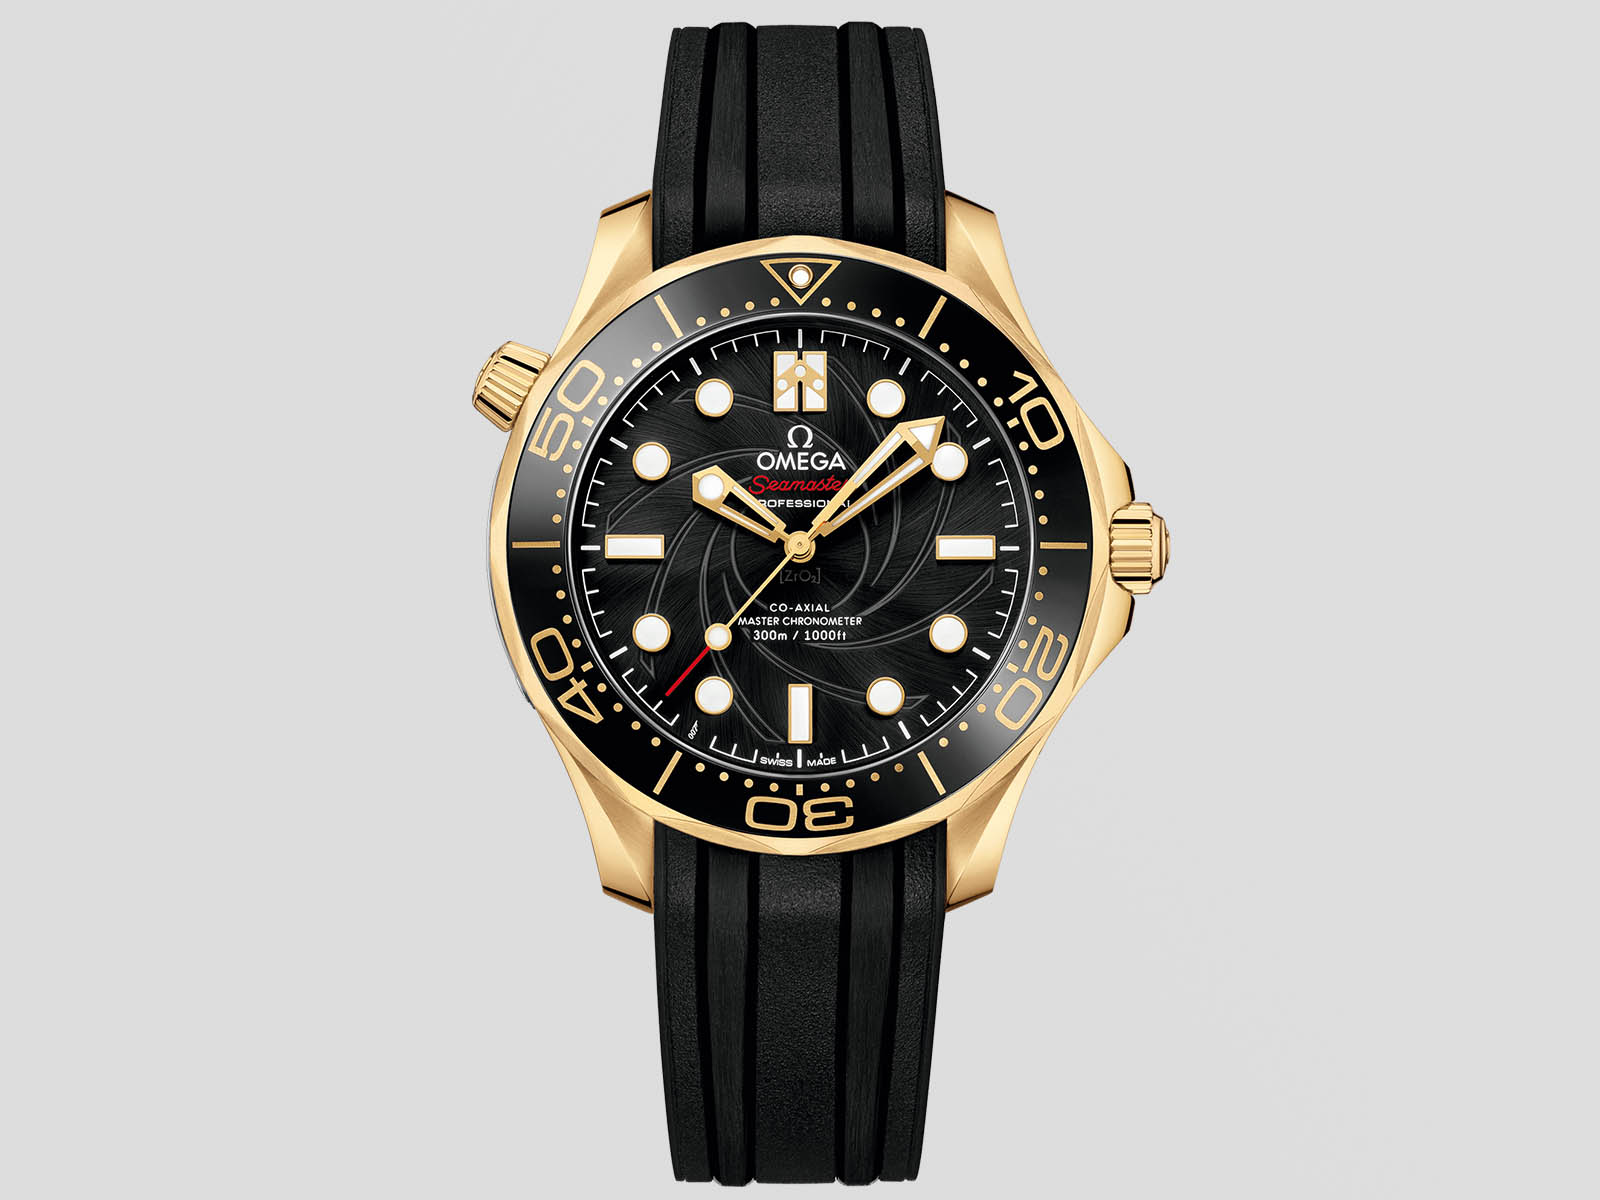 210-62-42-20-01-001-omega-seamaster-diver-300m-omega-co-axial-master-chronometer-42-mm-2.jpg